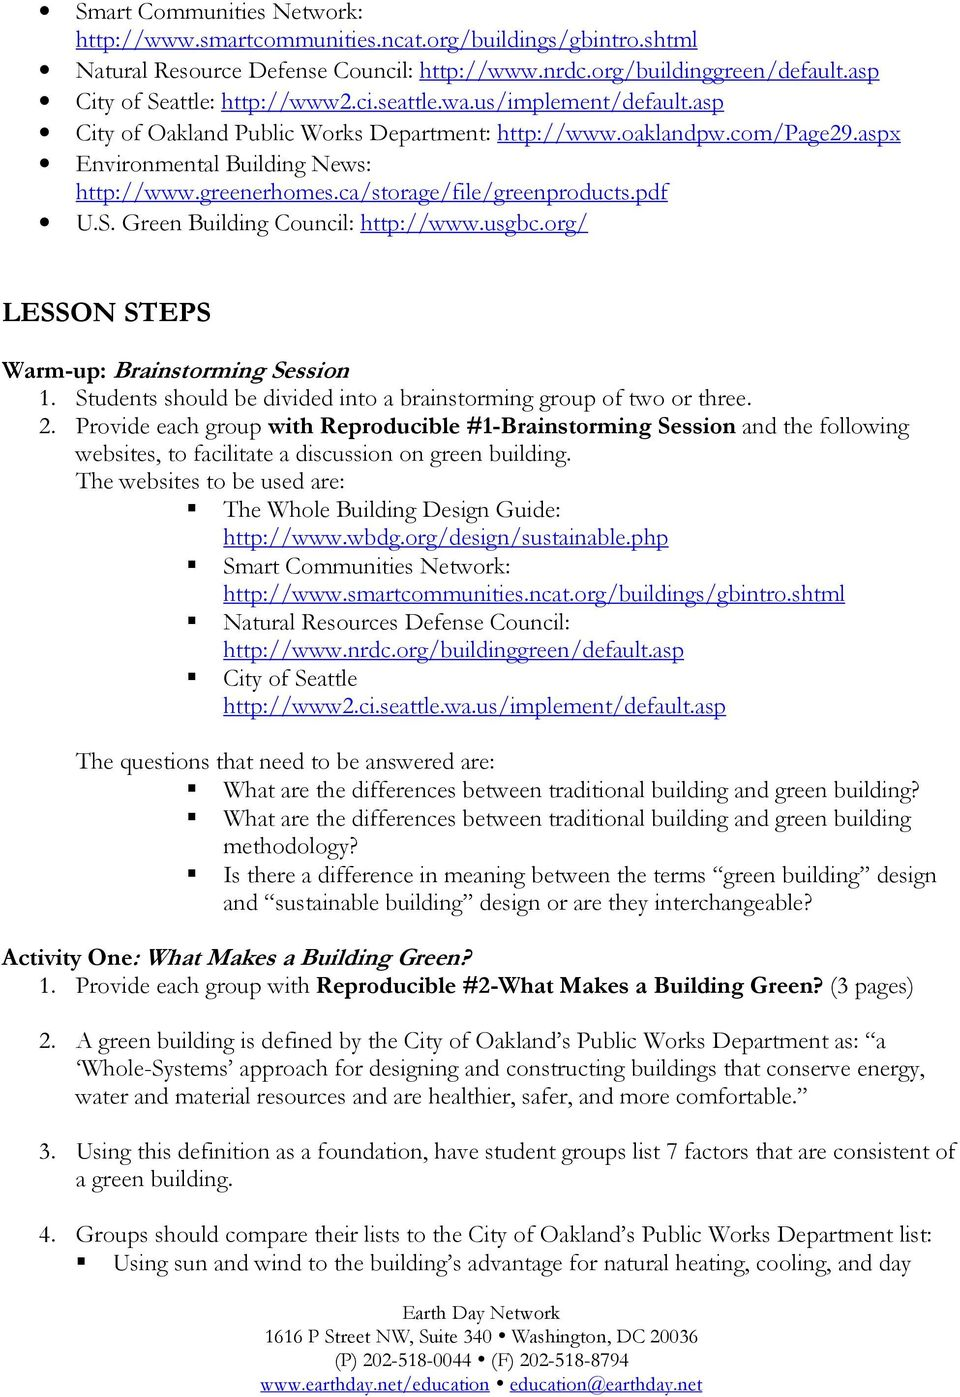 Green Building Council: http://www.usgbc.org/ LESSON STEPS Warm-up: Brainstorming Session 1. Students should be divided into a brainstorming group of two or three. 2.